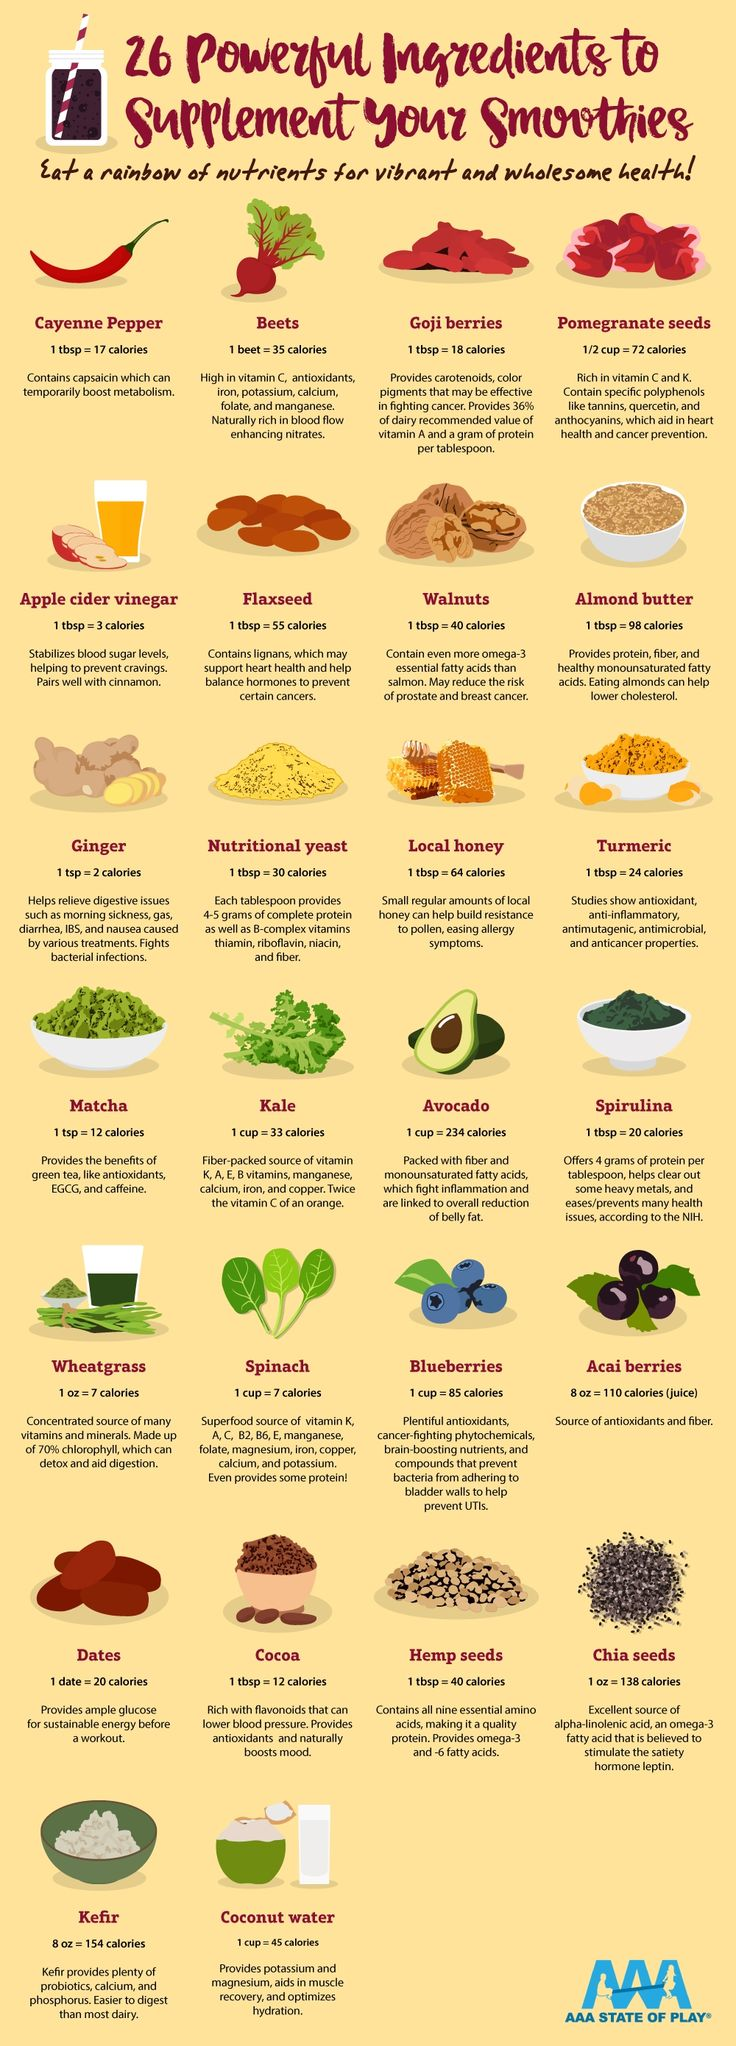 26 powerful ingredients to supplement your smoothies aaastateofplay com infographic